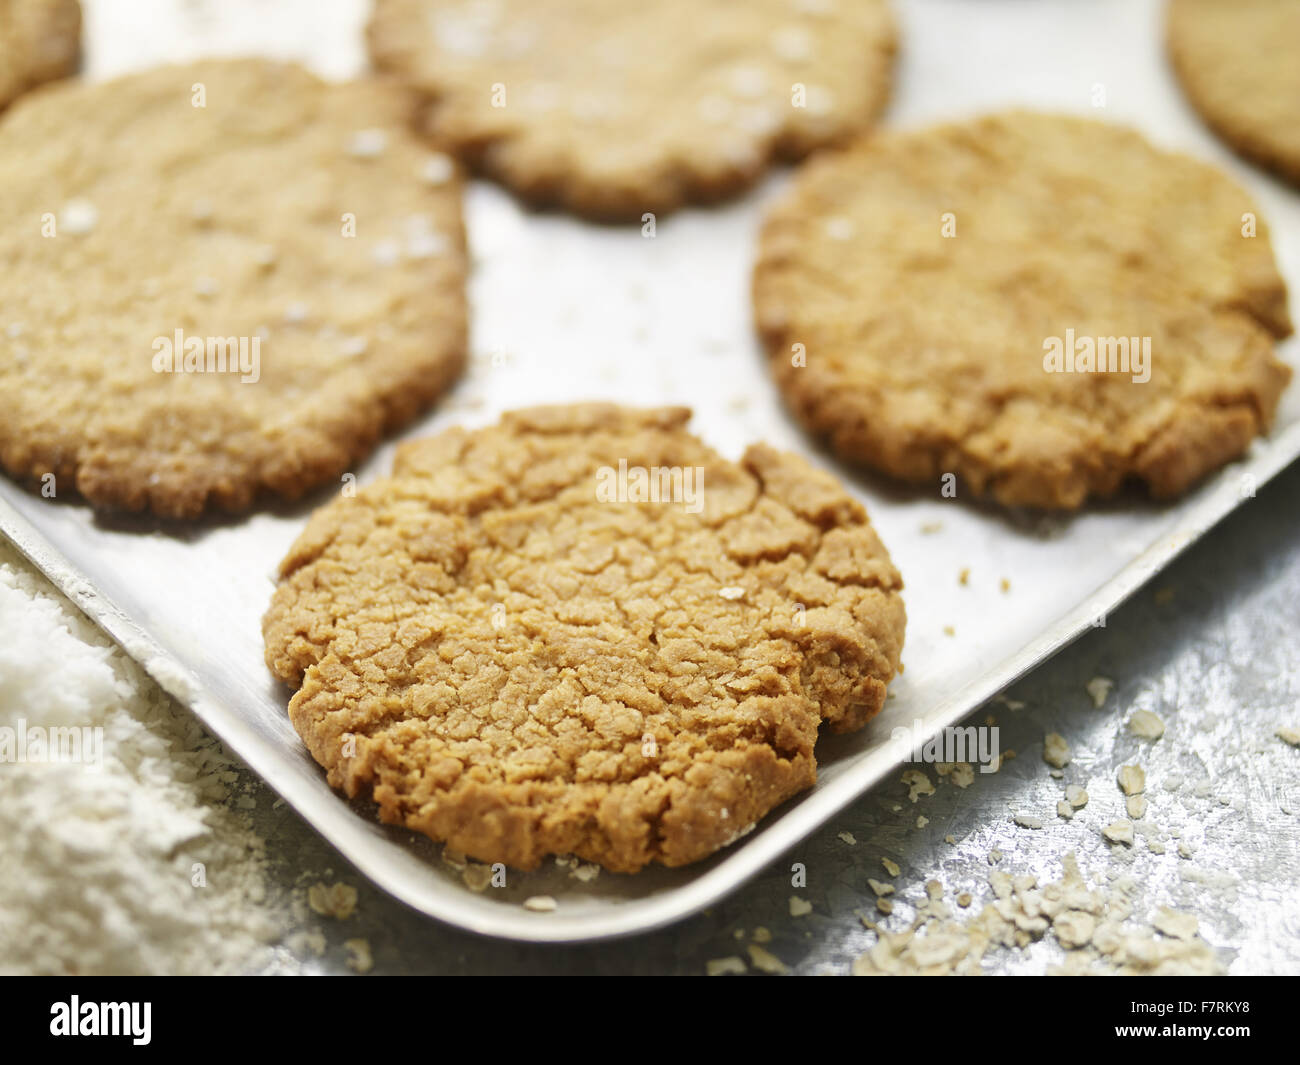 Cookies photographed for the 2015 National Trust Summer Cookbook. - Stock Image